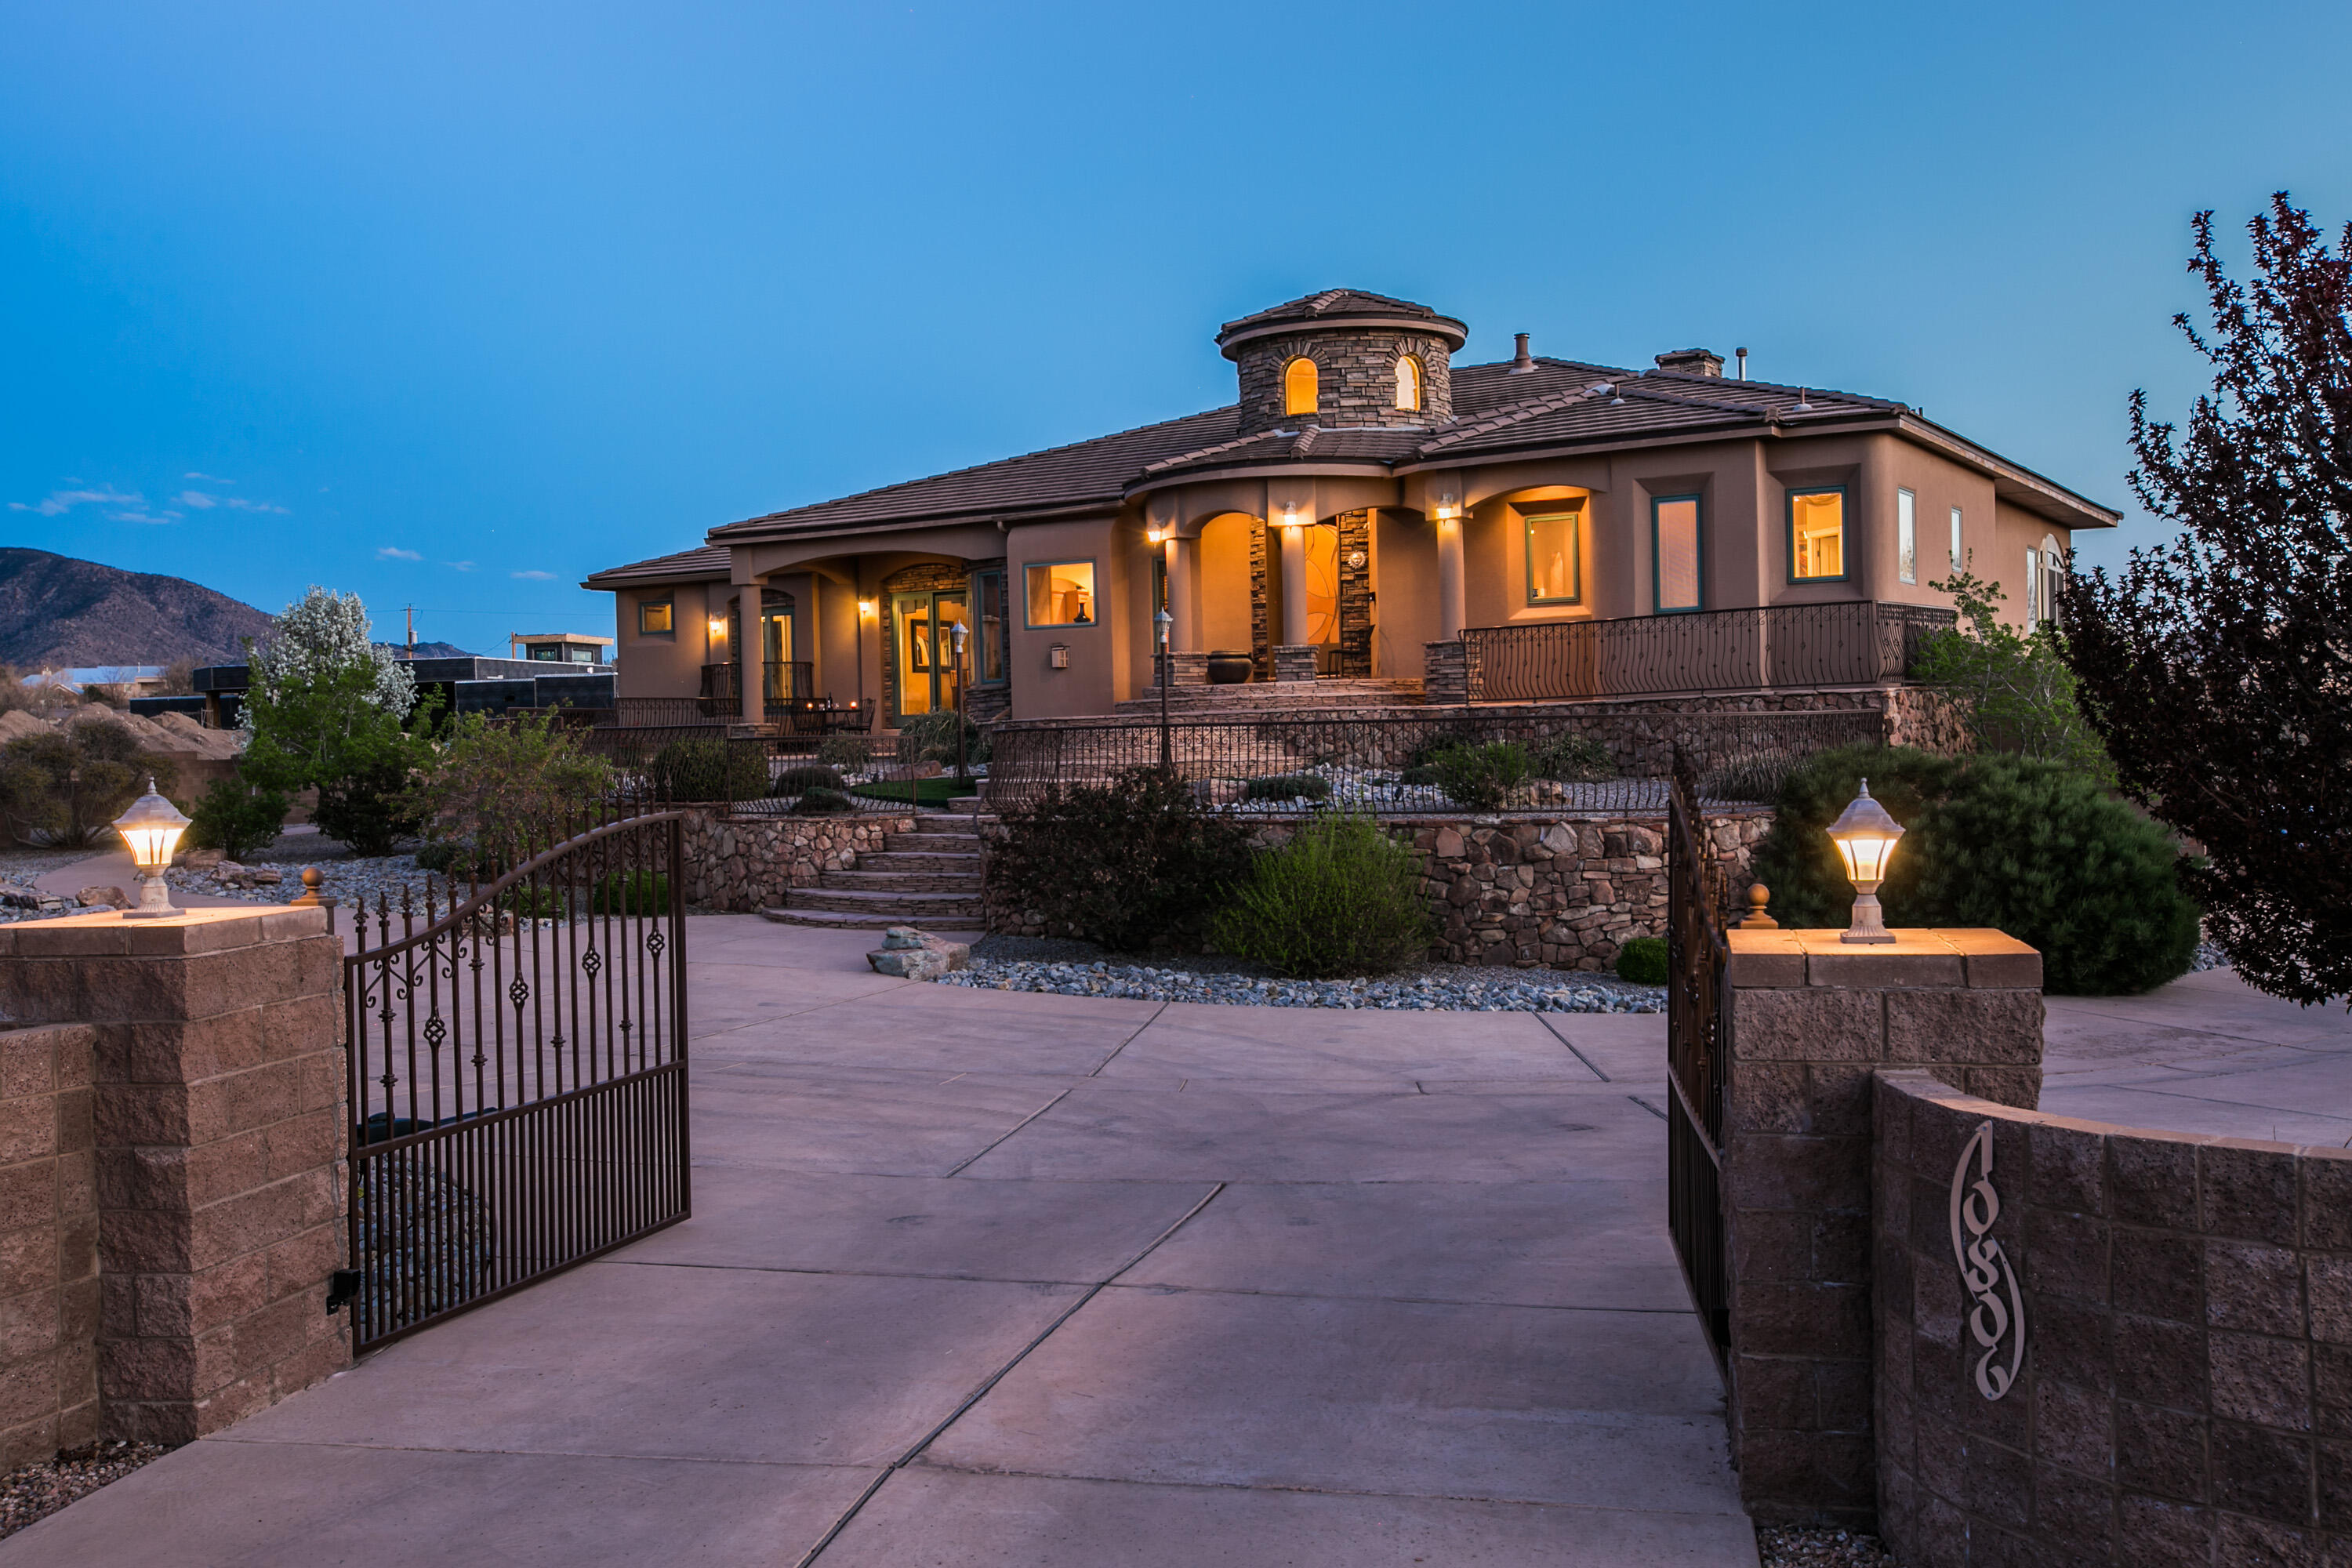 2005 Parade of Homes Winner, Lucero Custom Homes This impressive luxury home sits on a 1 acre, elevated lot with a beautiful gated entrance, overlooking the gorgeous Sandia Mountains and amazing city views. The gourmet kitchen with an oversized island overlooks the family and dining spaces with an open concept FP for entertaining. The large patio has been enclosed to maximize the entertaining space. Subzero/wolf appliances, plenty of storage and pantry space. 4 bedrooms, 4.5 bathrooms, office, downstairs walk out w/ family room, recreational room, exercise room and wet bar. The 3 car garage has an additional BIG storage closet! Blown in fiberglass insulation throughout including roof, Radiant heat, Ref Air, Pella wood windows, putting green, outdoor BBQ, Murals byJoy  LuxuryABQHome